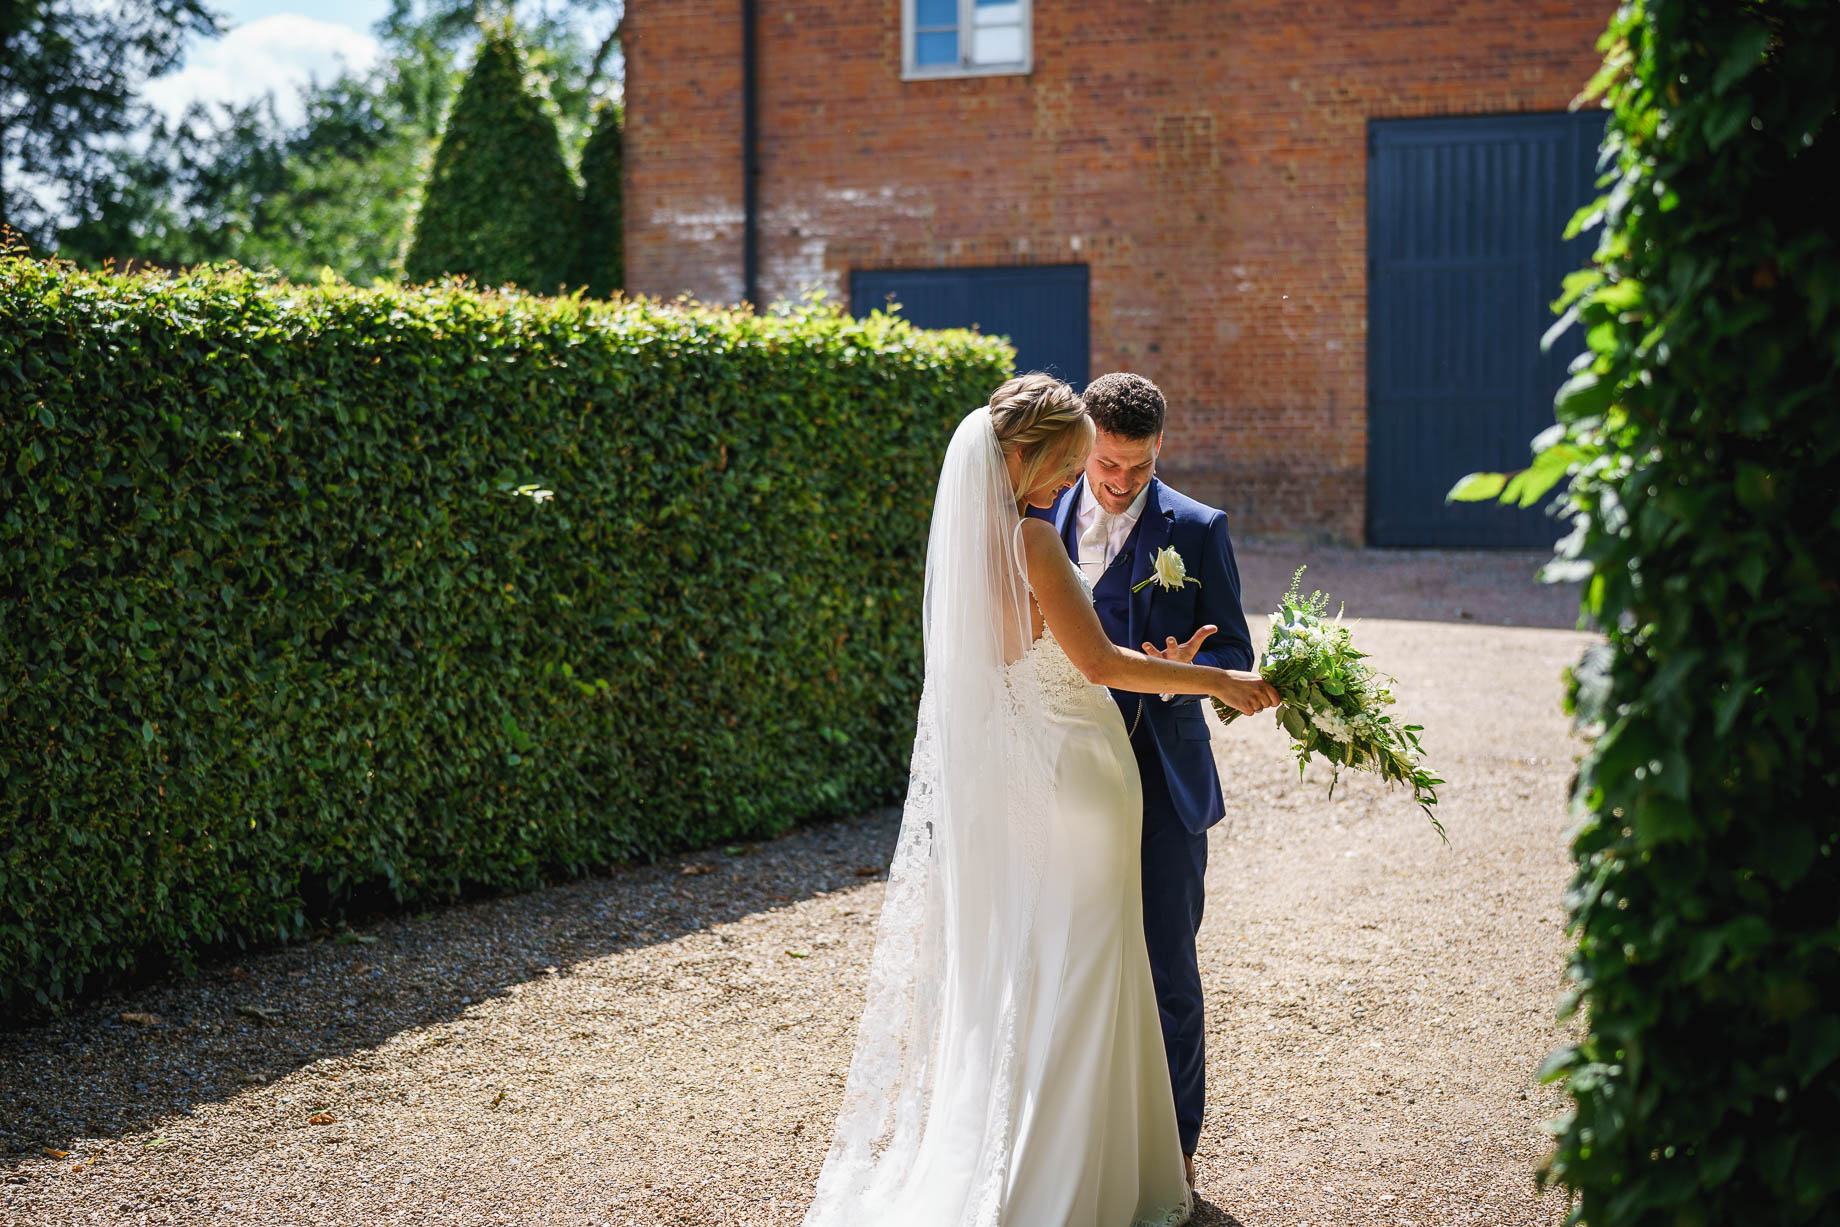 Bury Court Barn wedding photography - Guy Collier Photography